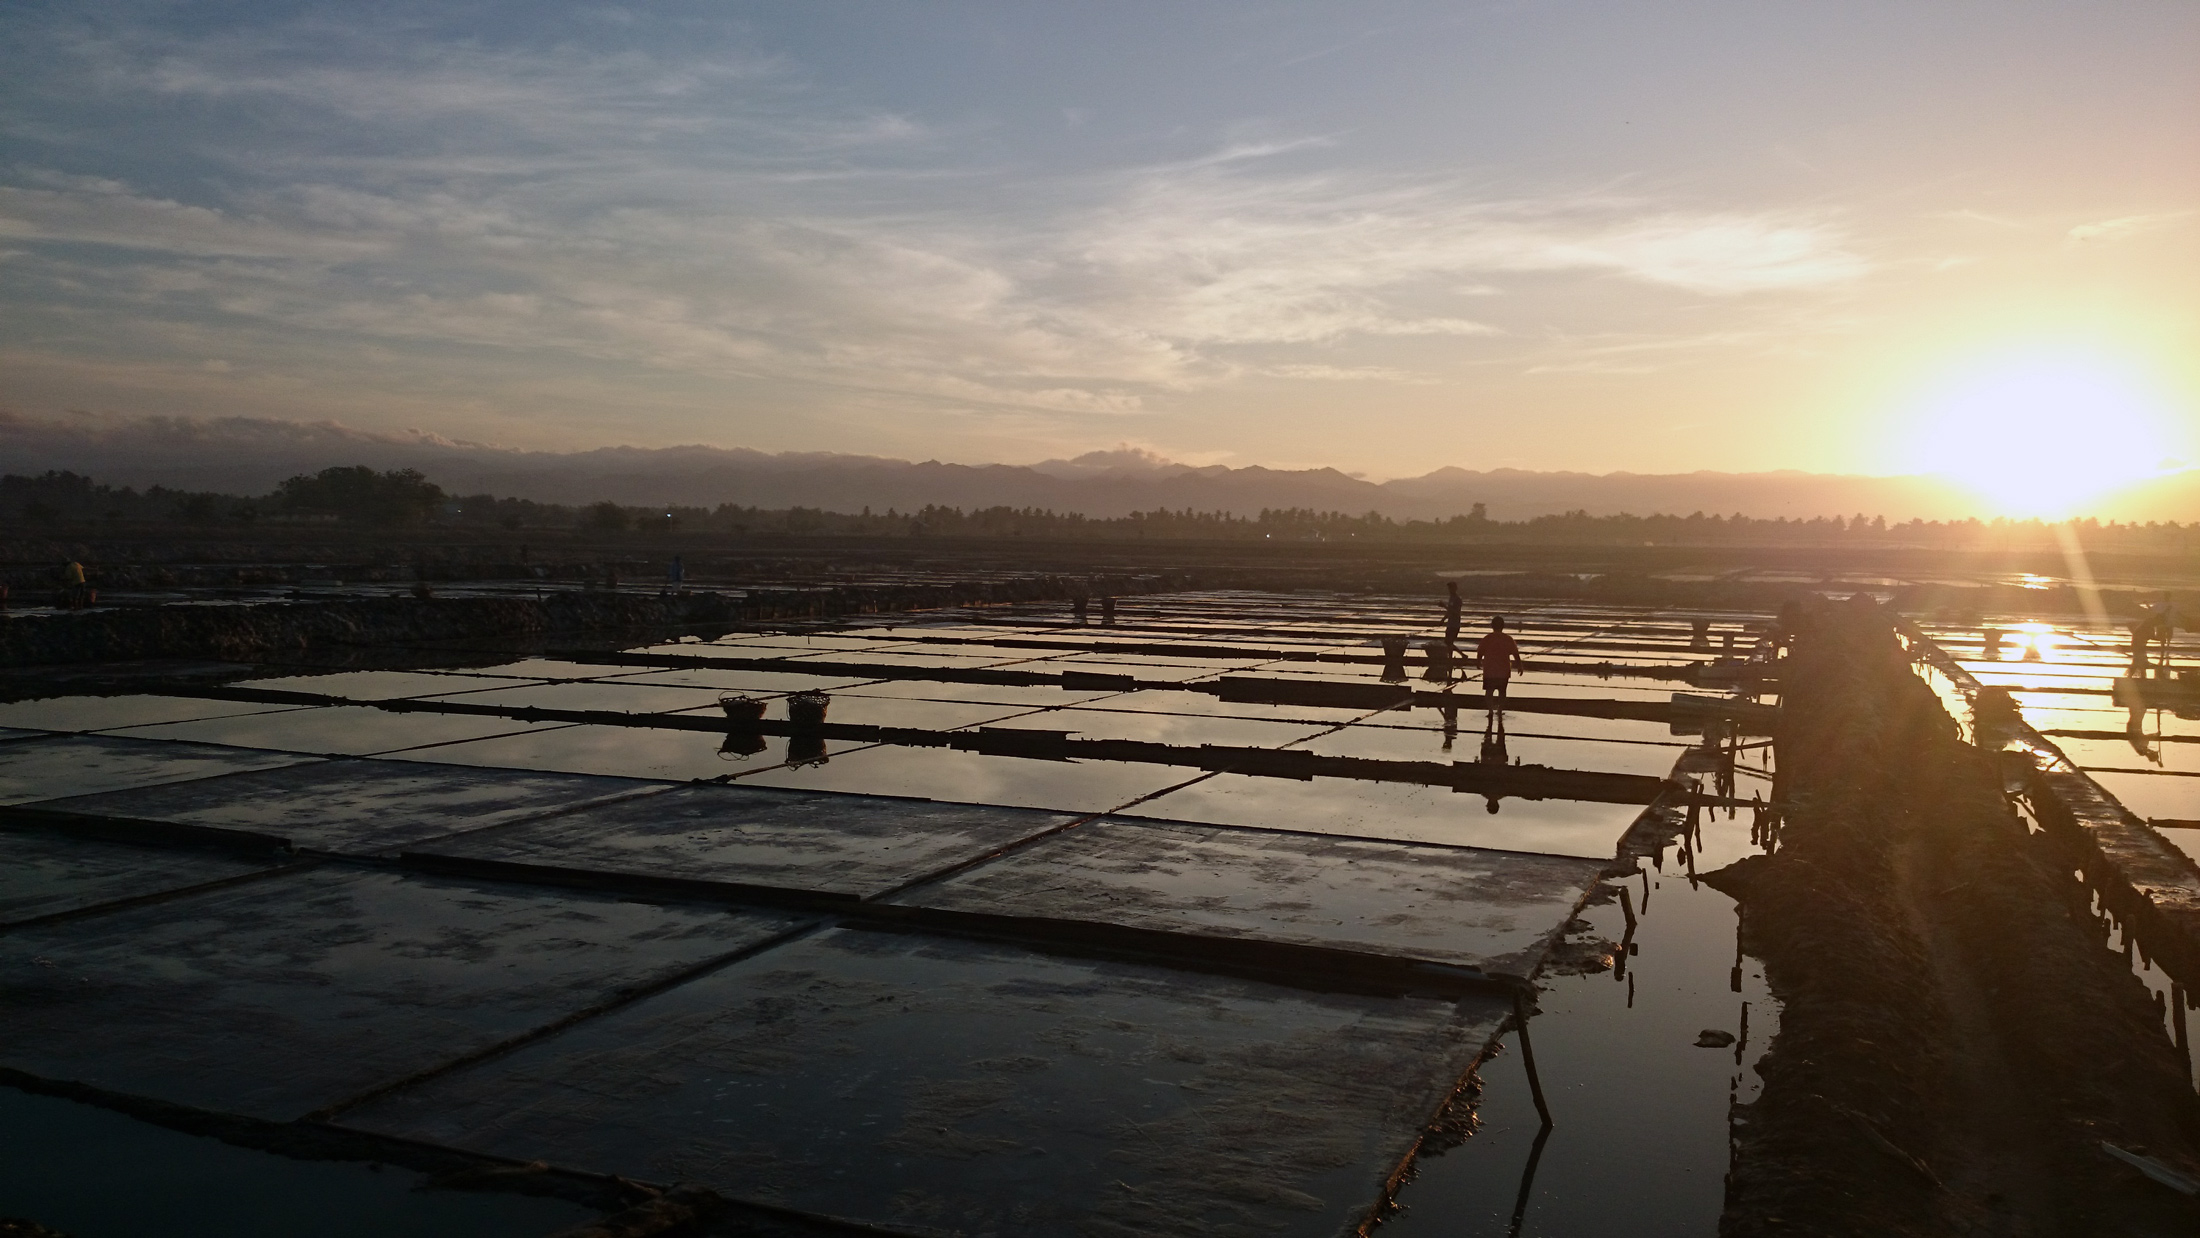 Already working the salt pans at dawn. Photo by Pete SImpson.